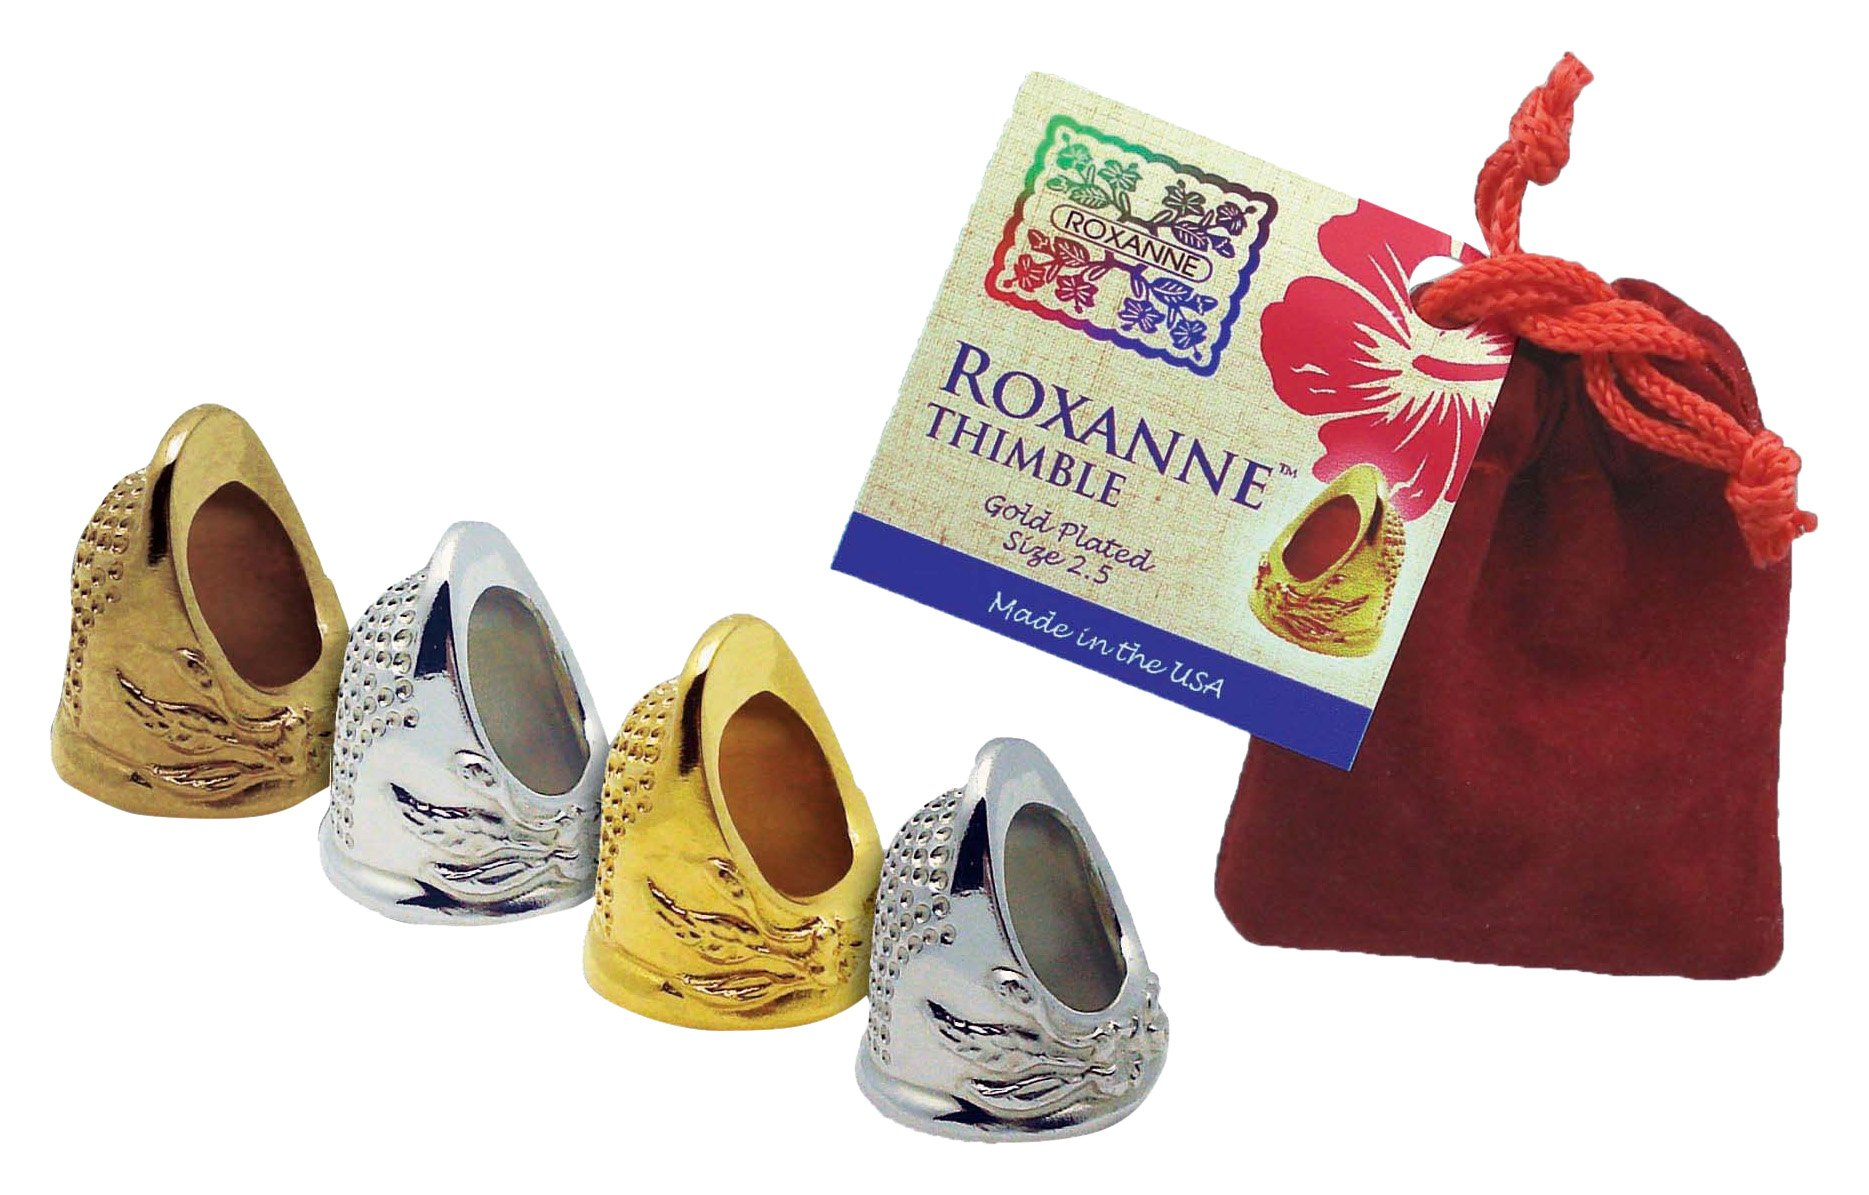 Colonial Needle RX-THGD-4.5 Roxanne Plated Thimble, Size 4.5, Gold by Colonial Needle